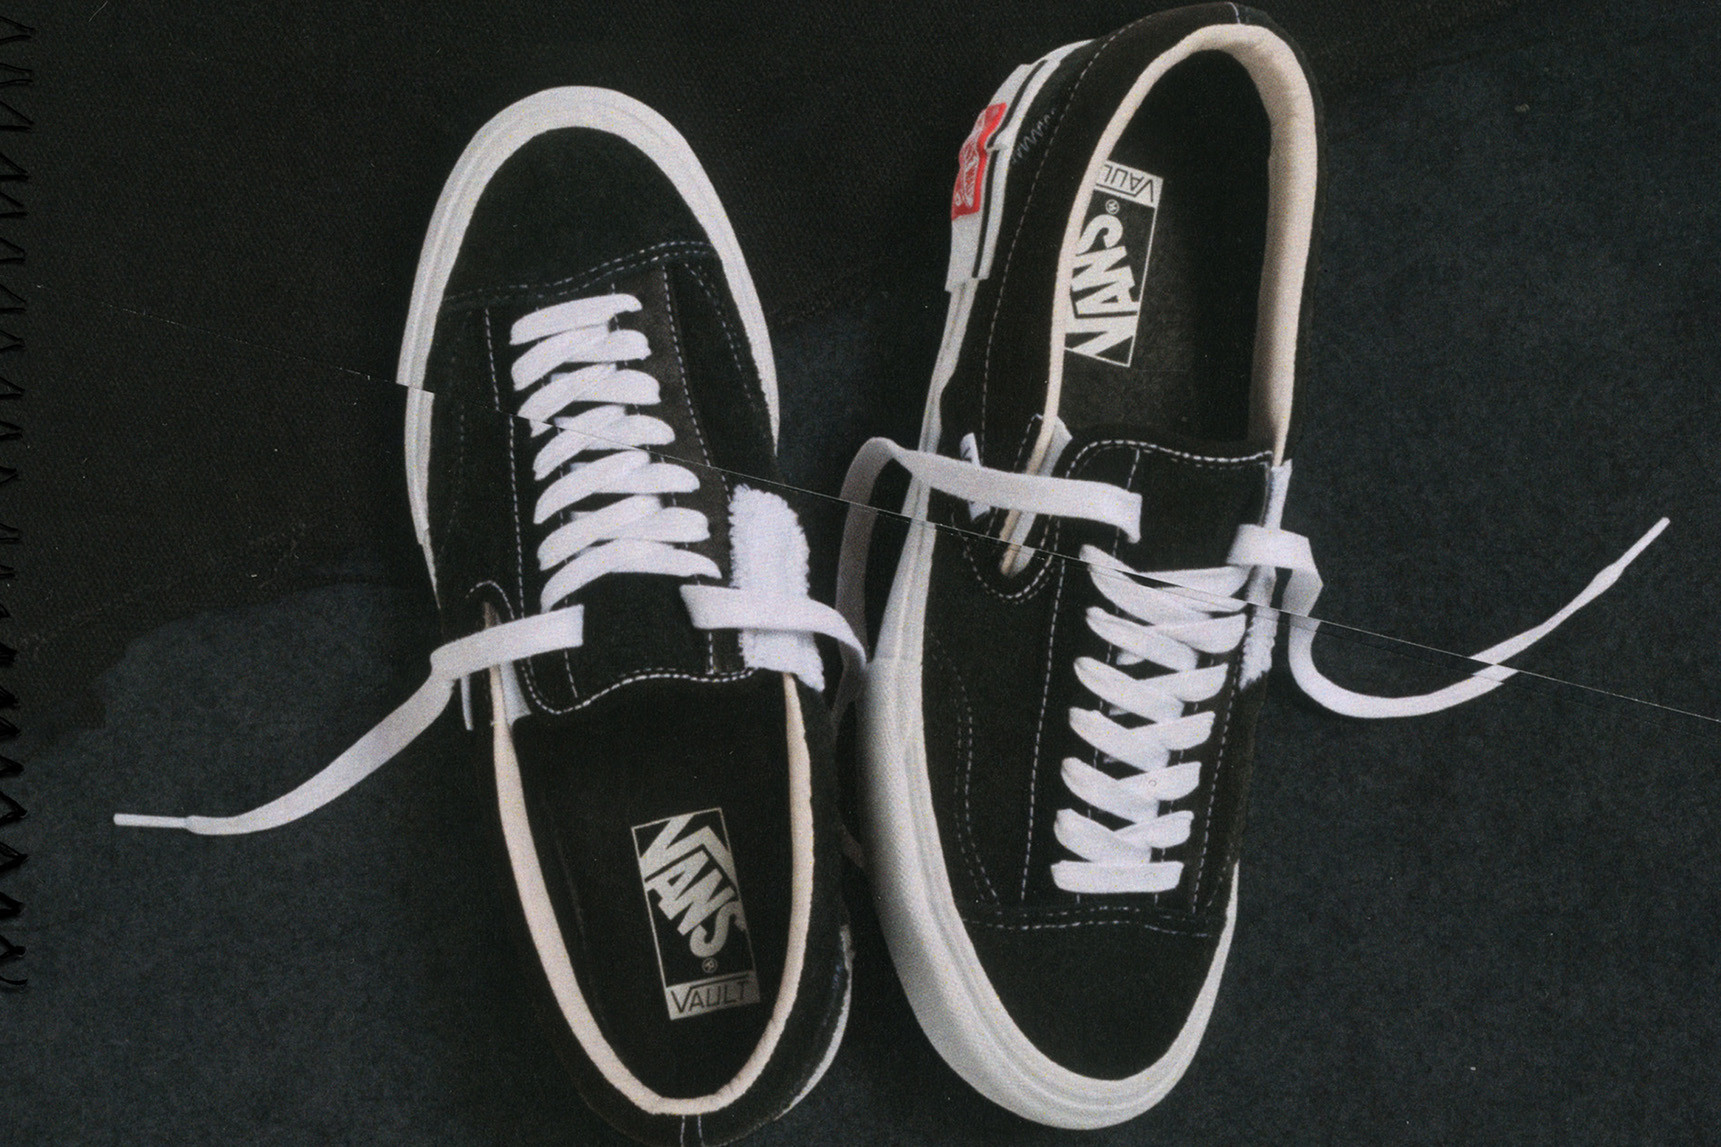 a7fdf175992 more pics from Hypebeast after the jump. https   hypebeast.com image 2018 06 vans-vault-cap-lx-pack-sk8-hi